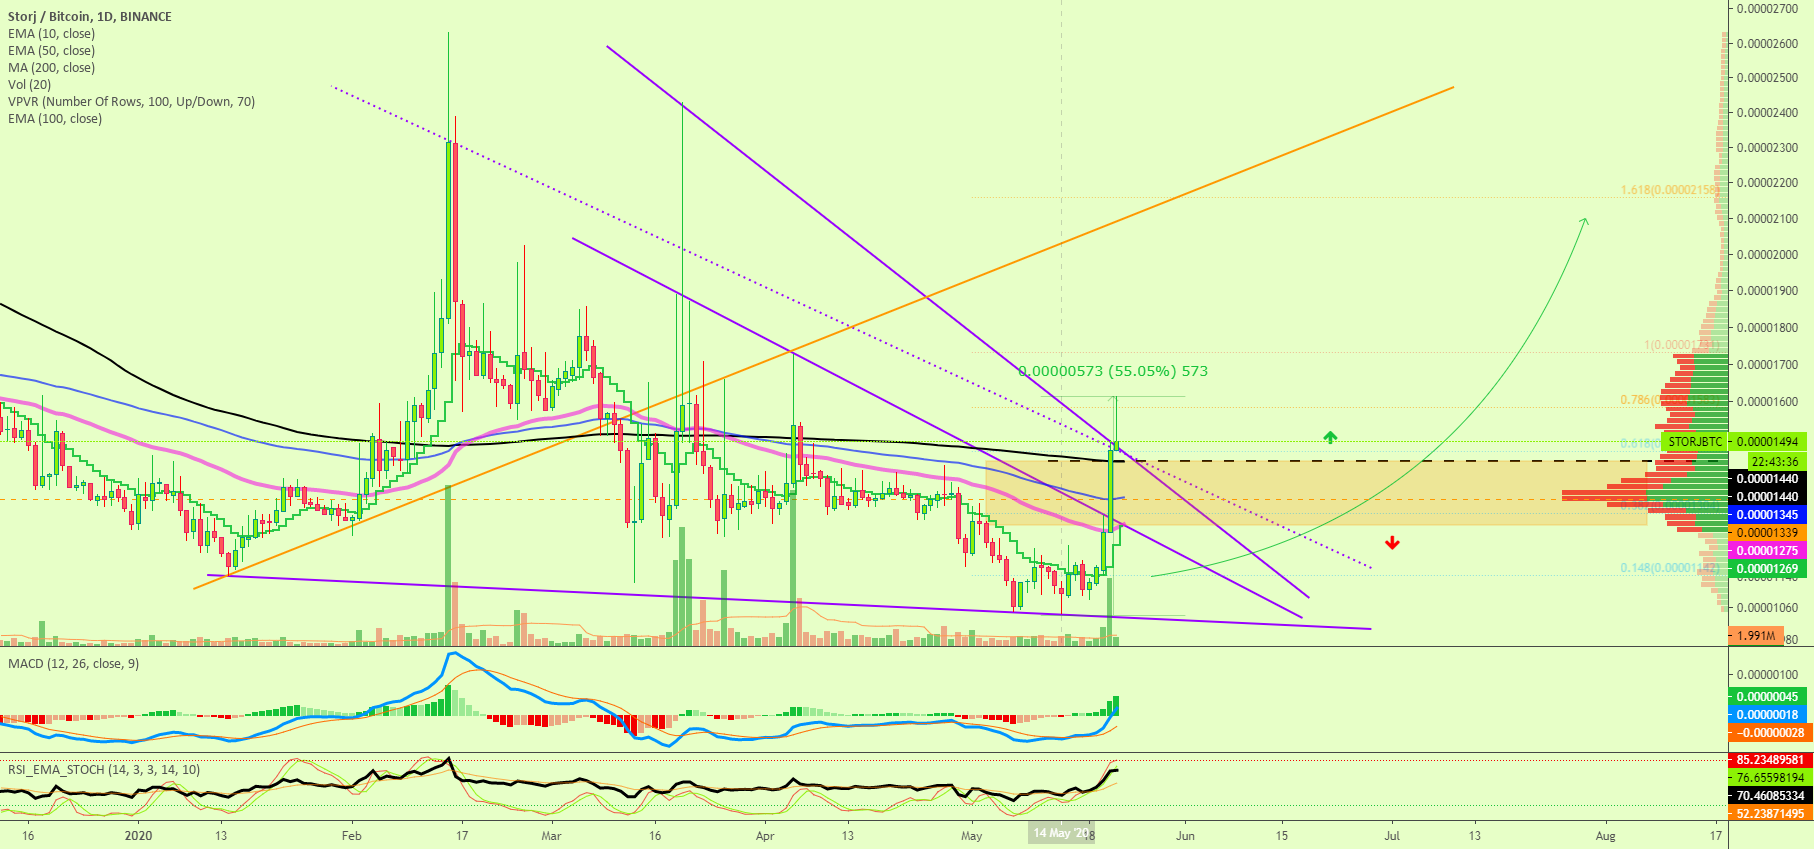 <bold>Storj</bold> Conquers MA200, Big Swings Chart for BINANCE:STORJBTC by alanmasters